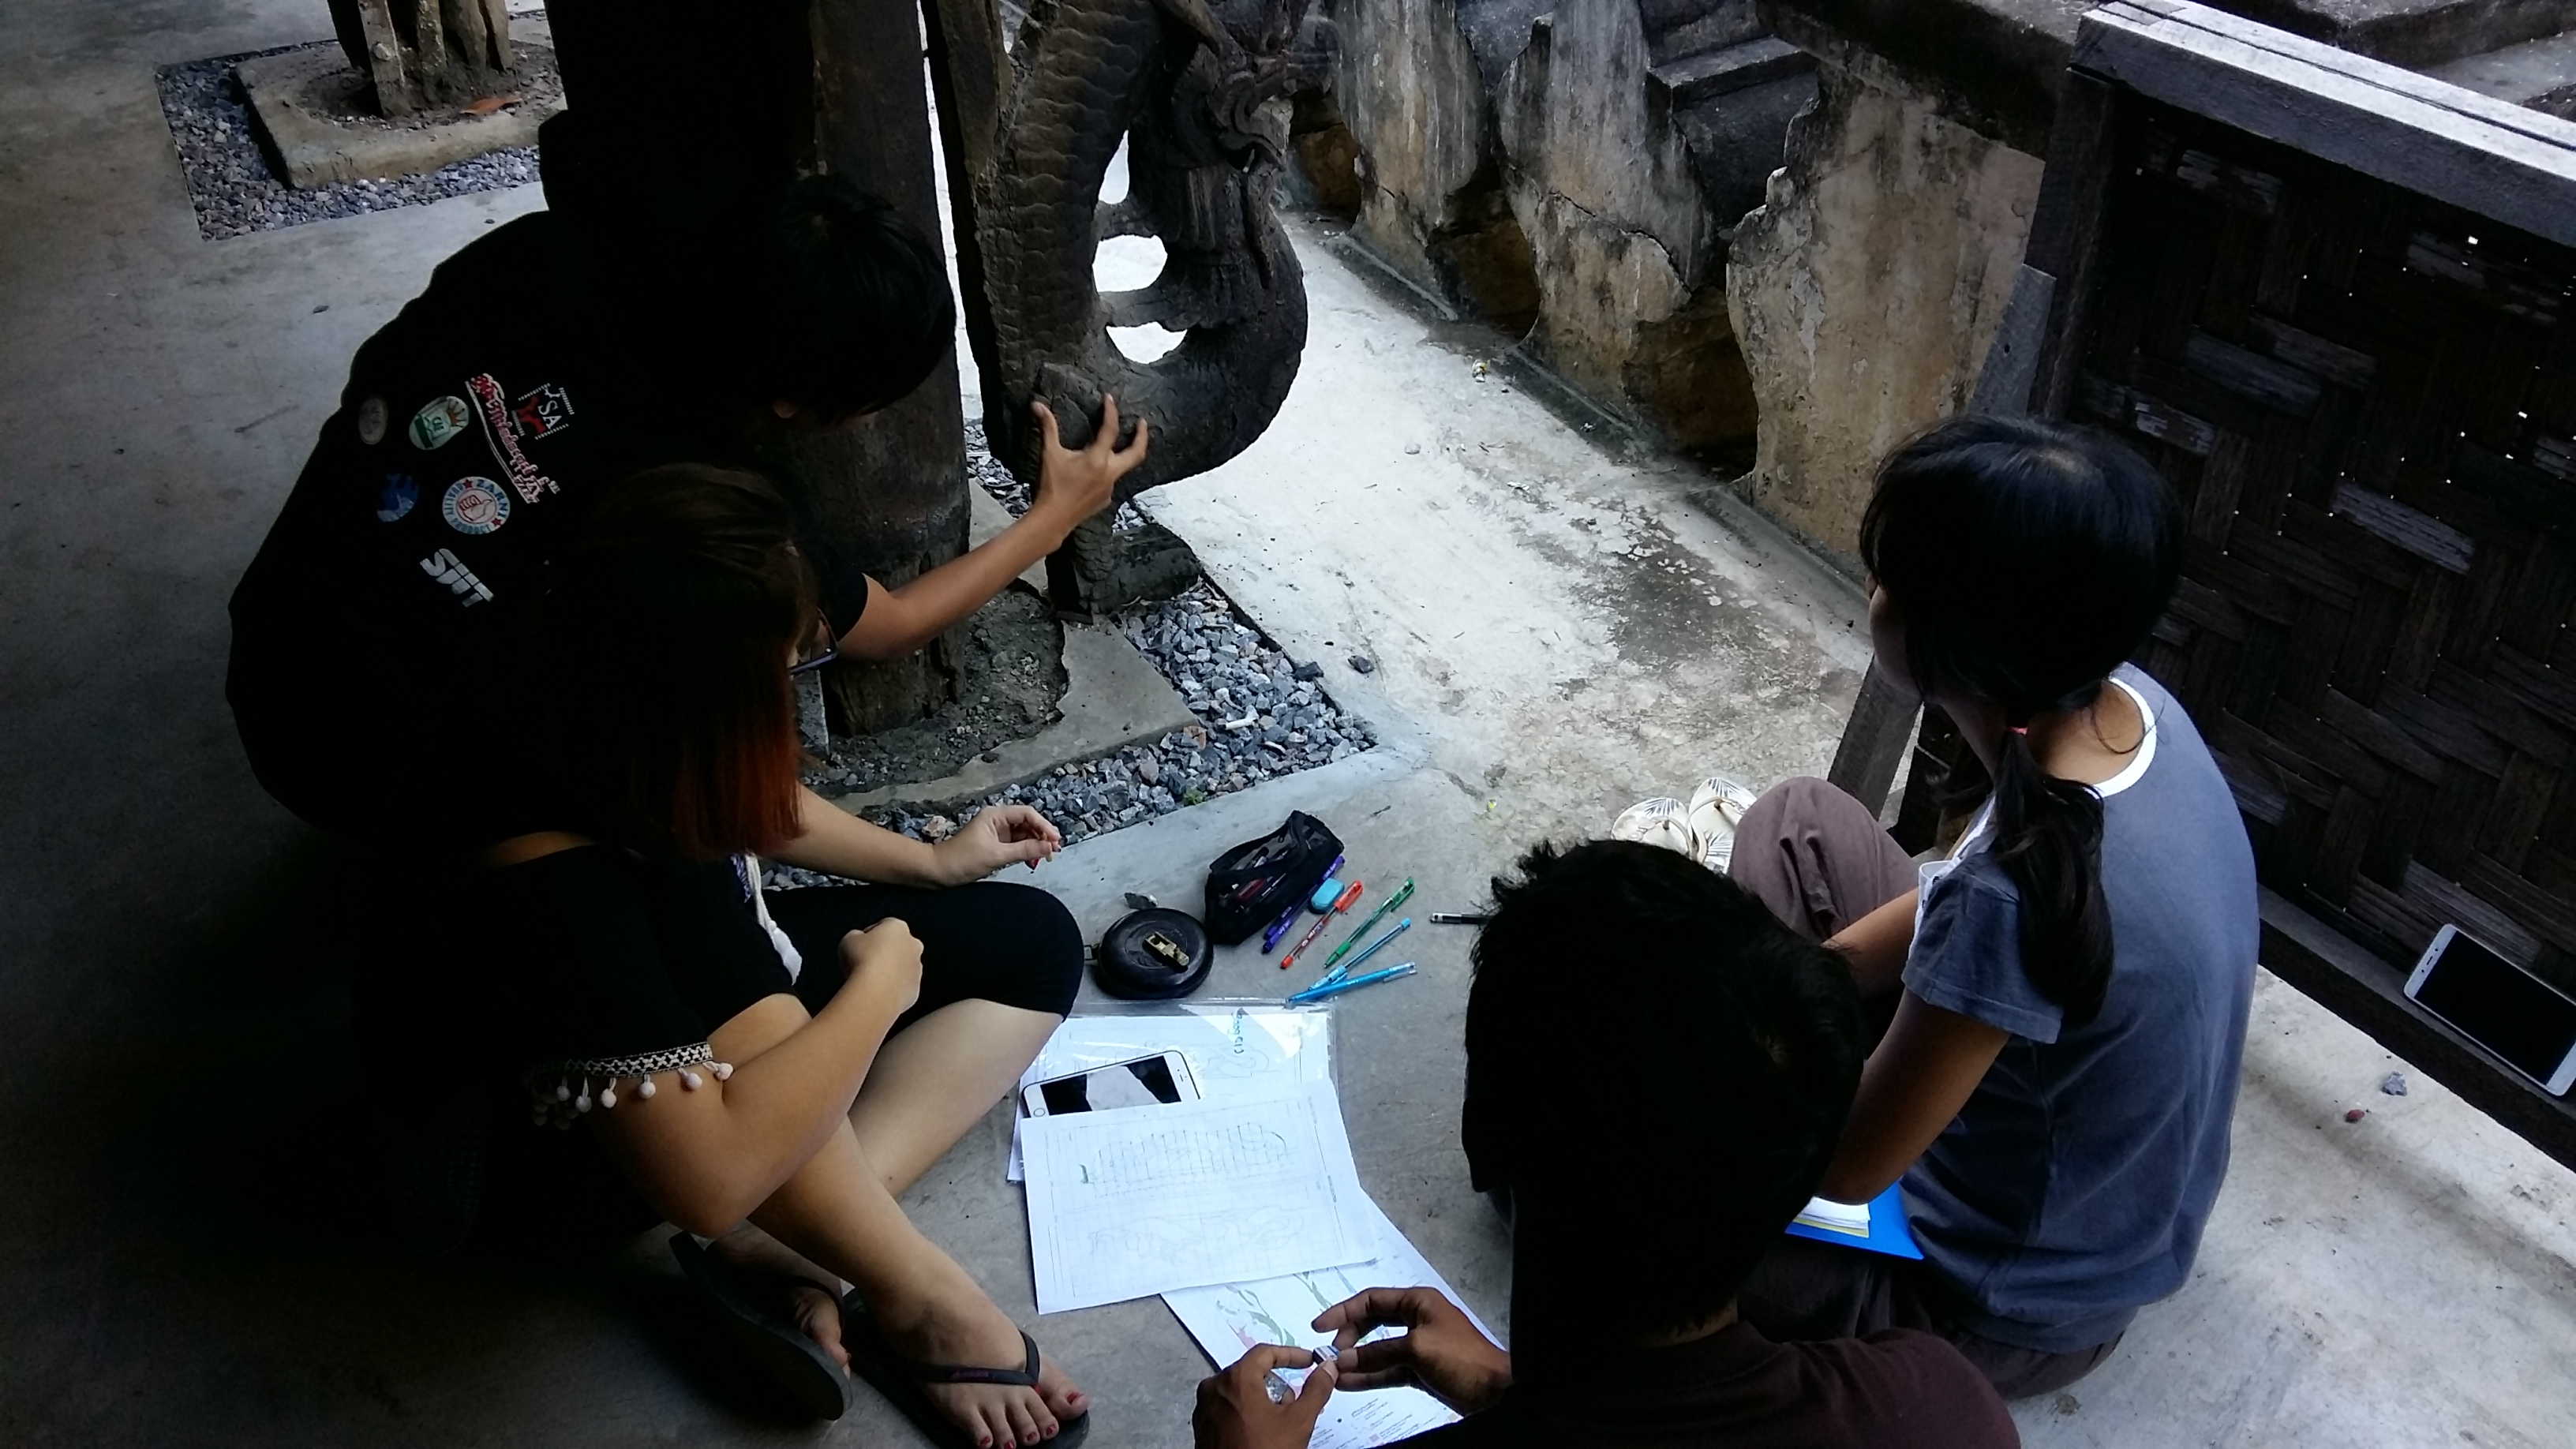 Students assess conditions of a nayar toward defining its conservation.